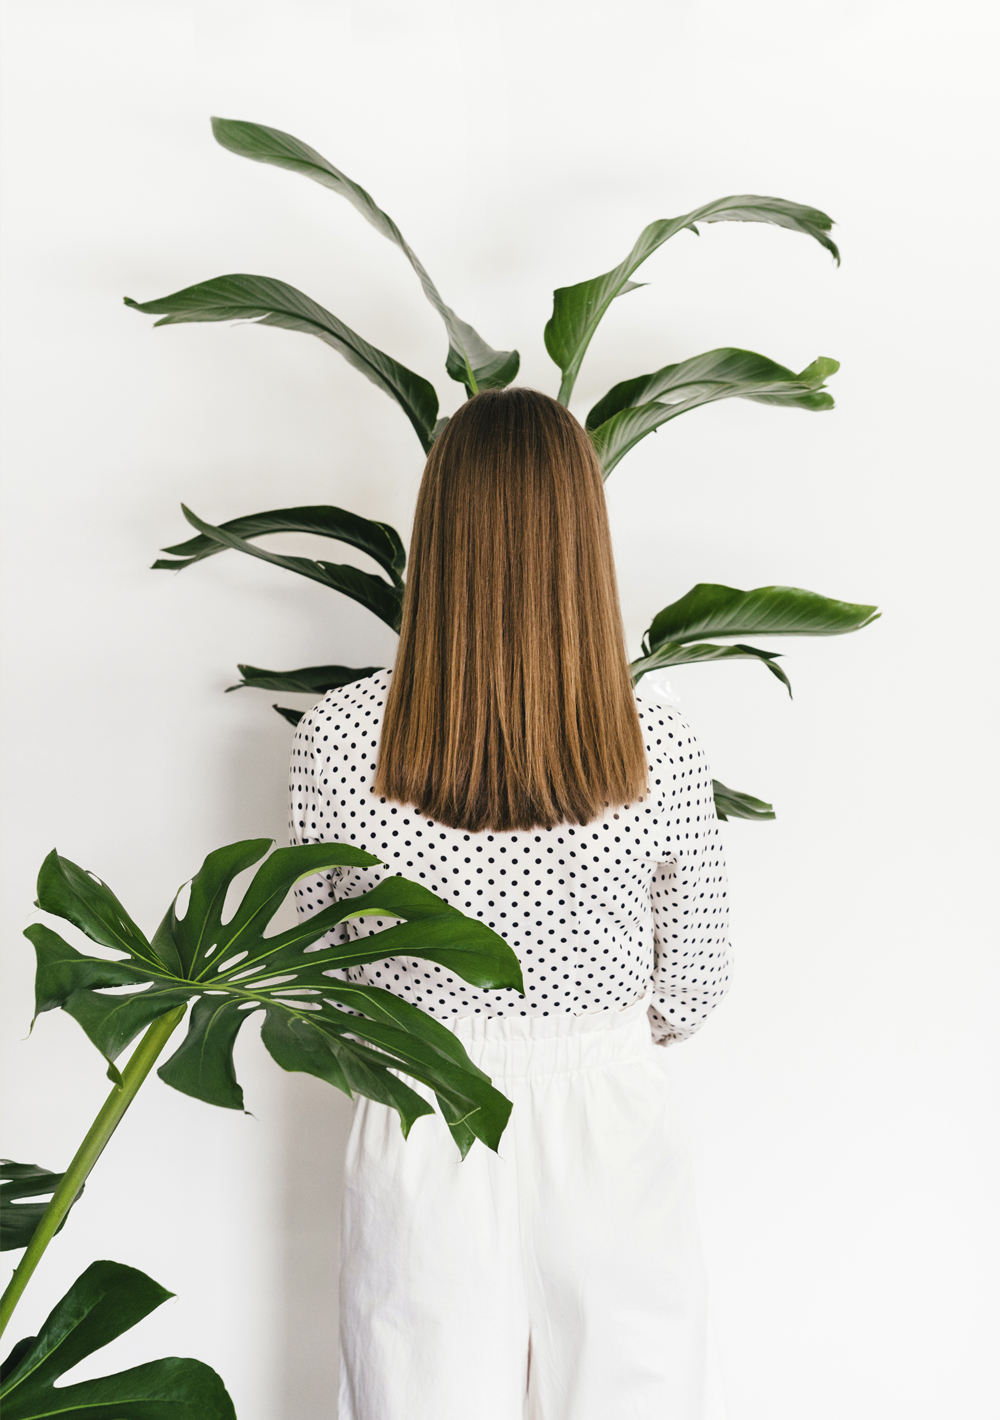 Woman from the back holding plant